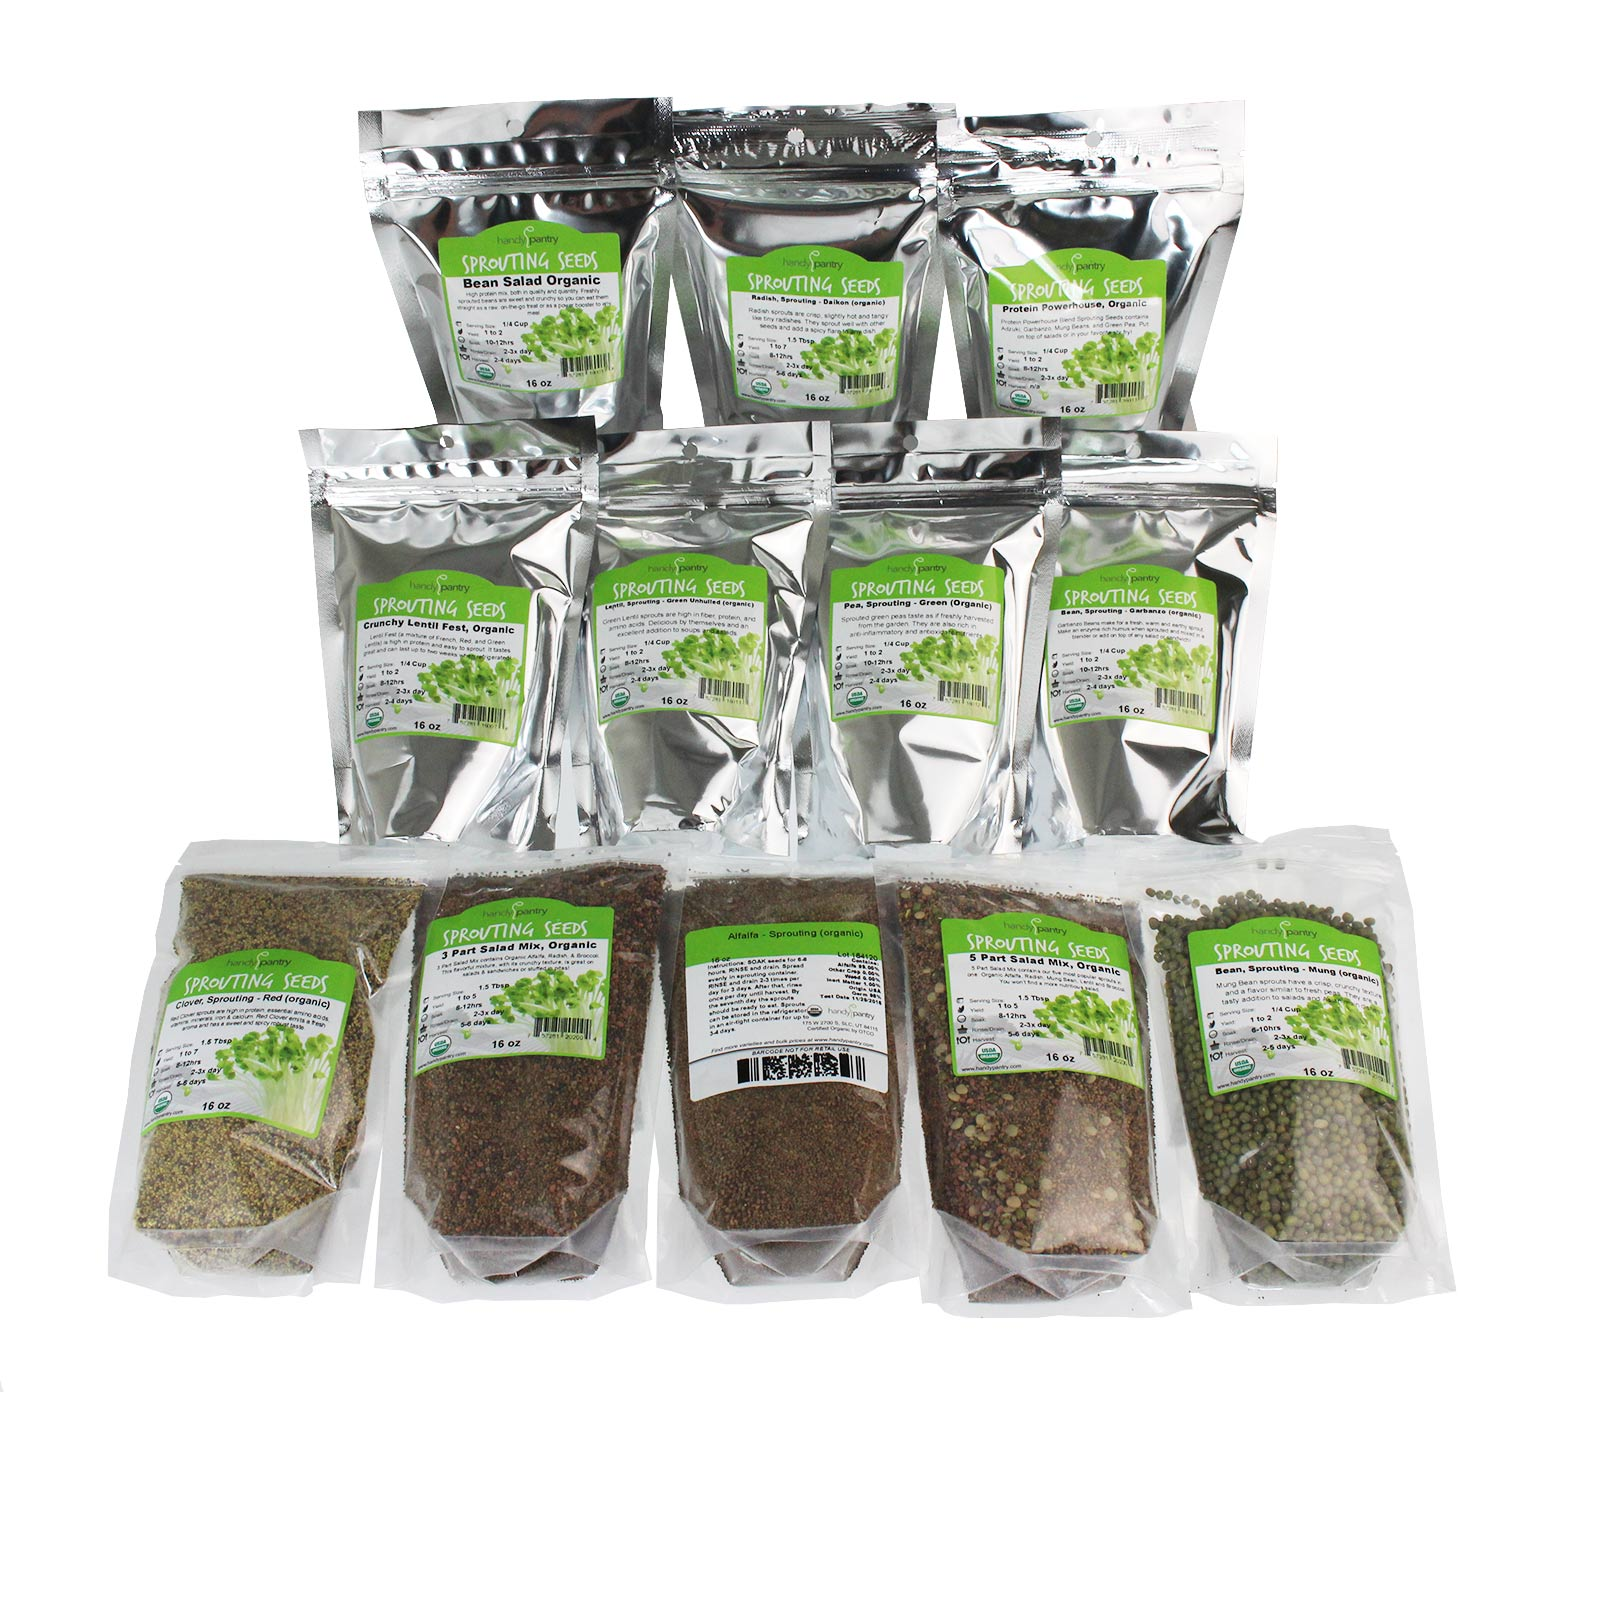 12 Lb Sprouting Seed Assortment 1 Lb Ea. of Organic Sprout Seeds Alfalfa, Radish, Clover,... by Handy Pantry